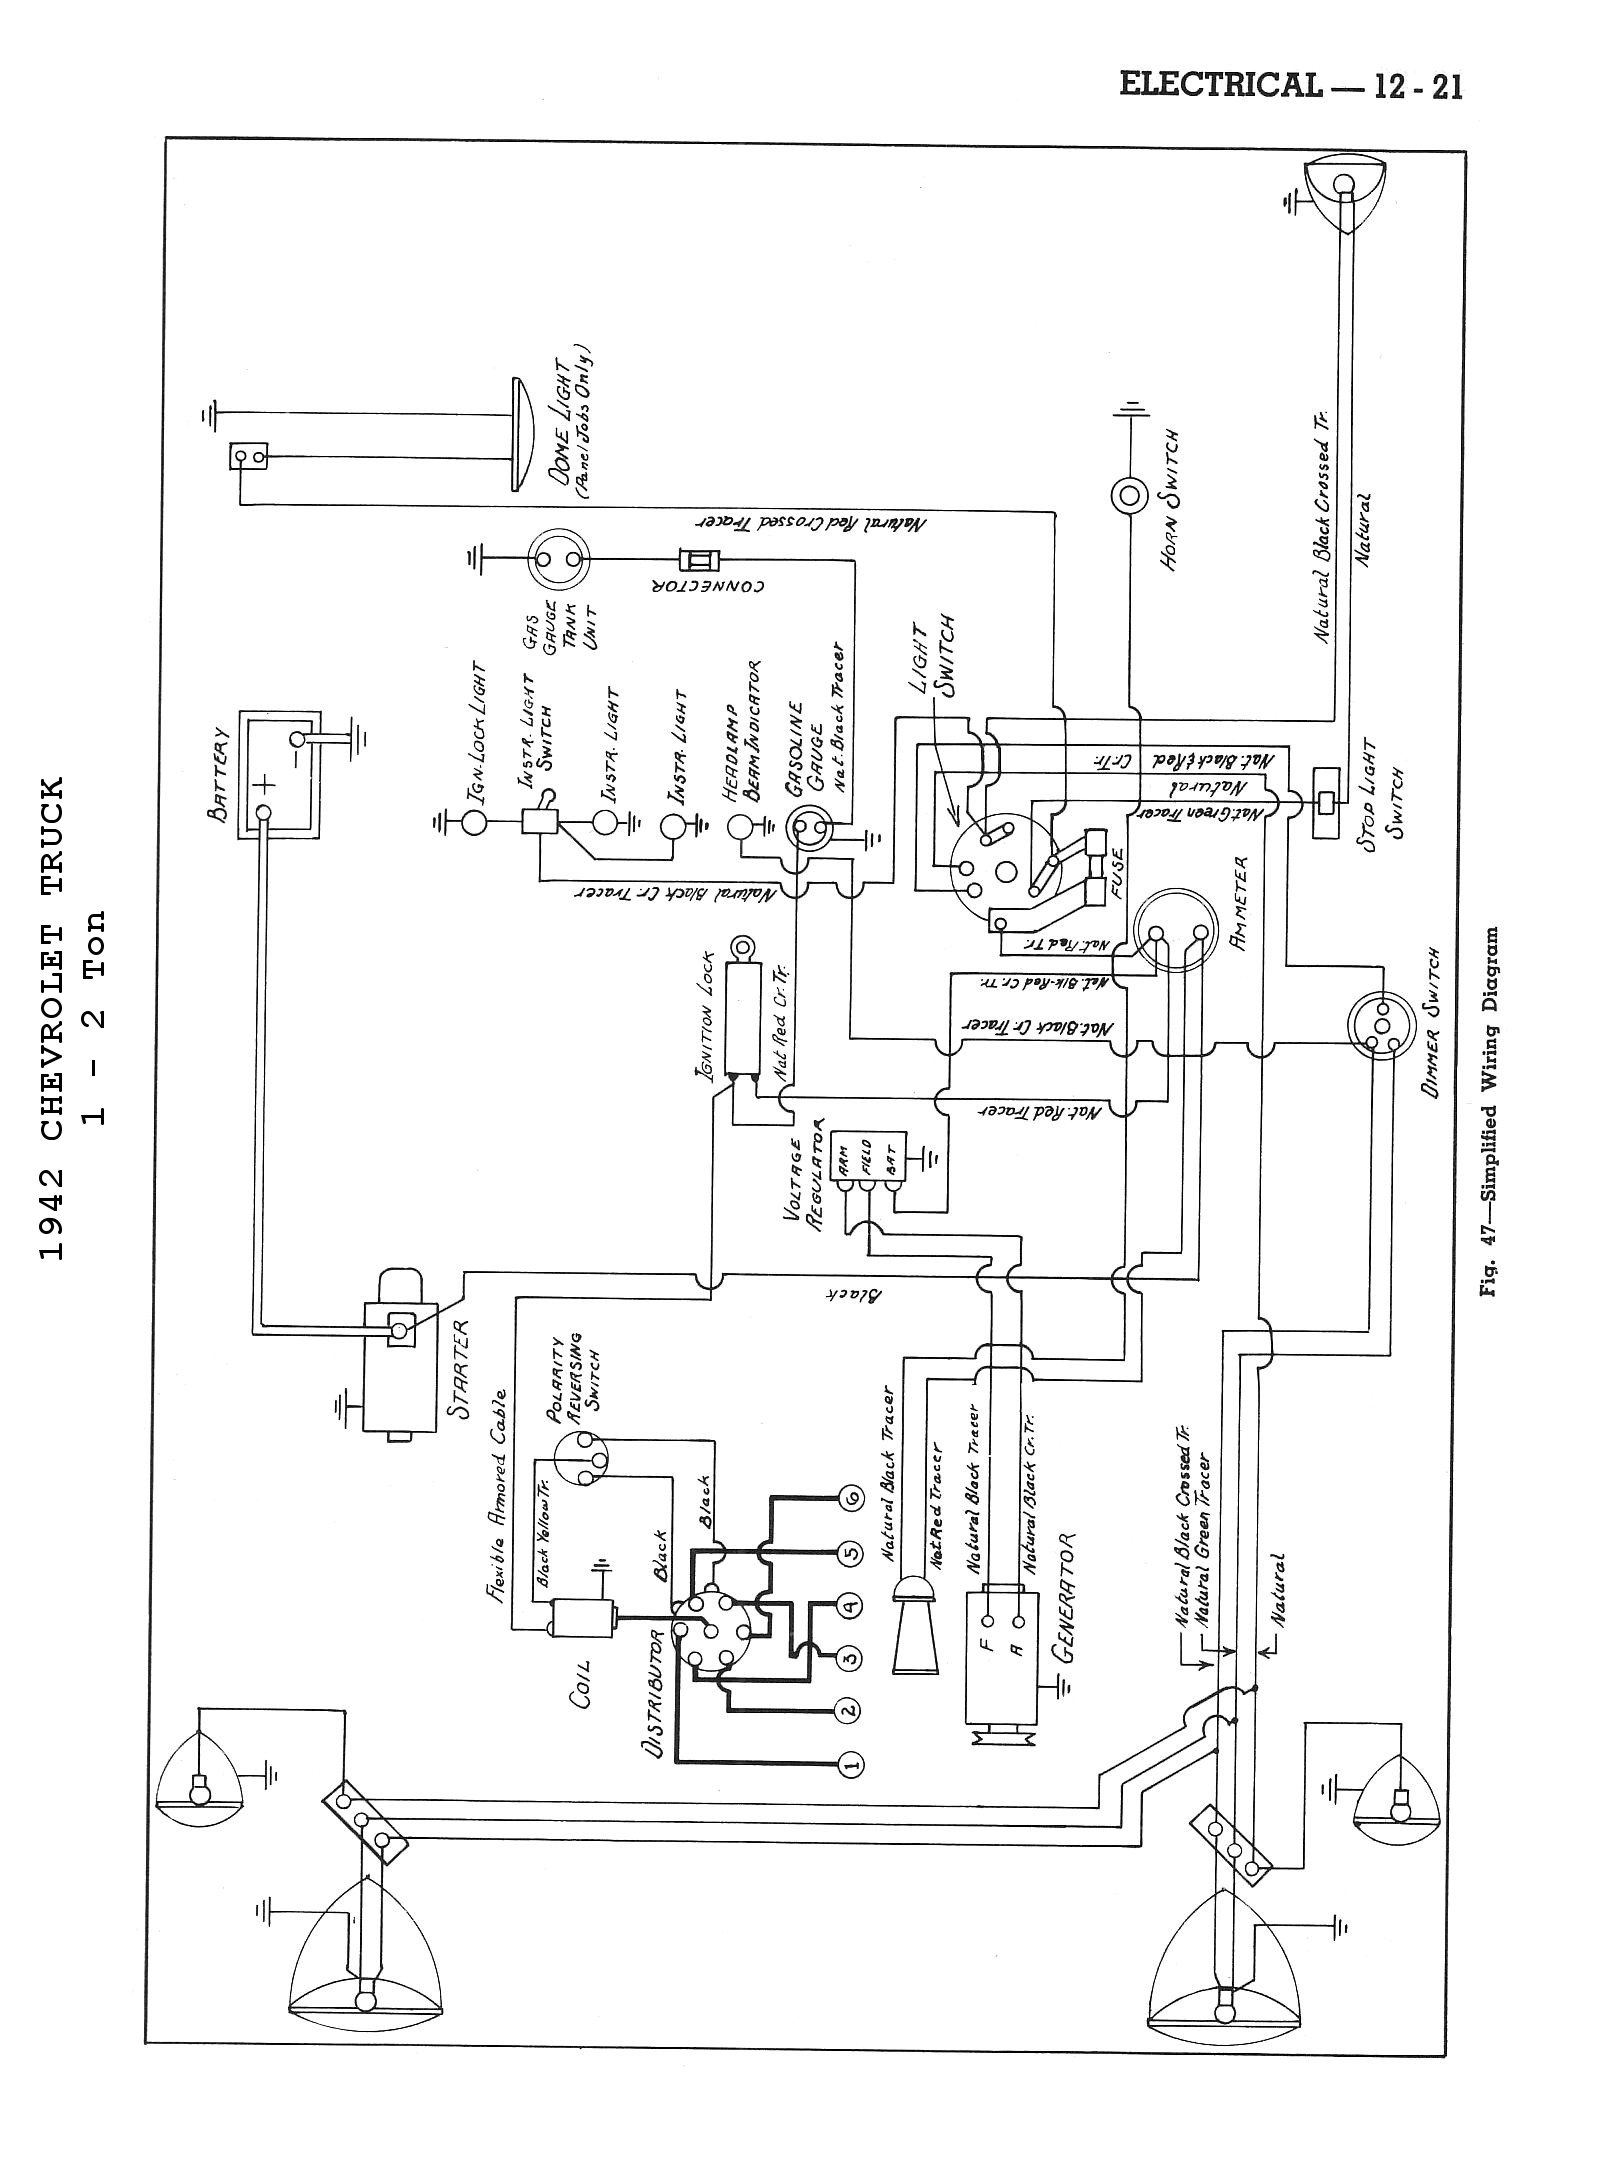 hight resolution of chevy wiring diagrams1942 body wiring diagram 1942 4x2 truck wiring